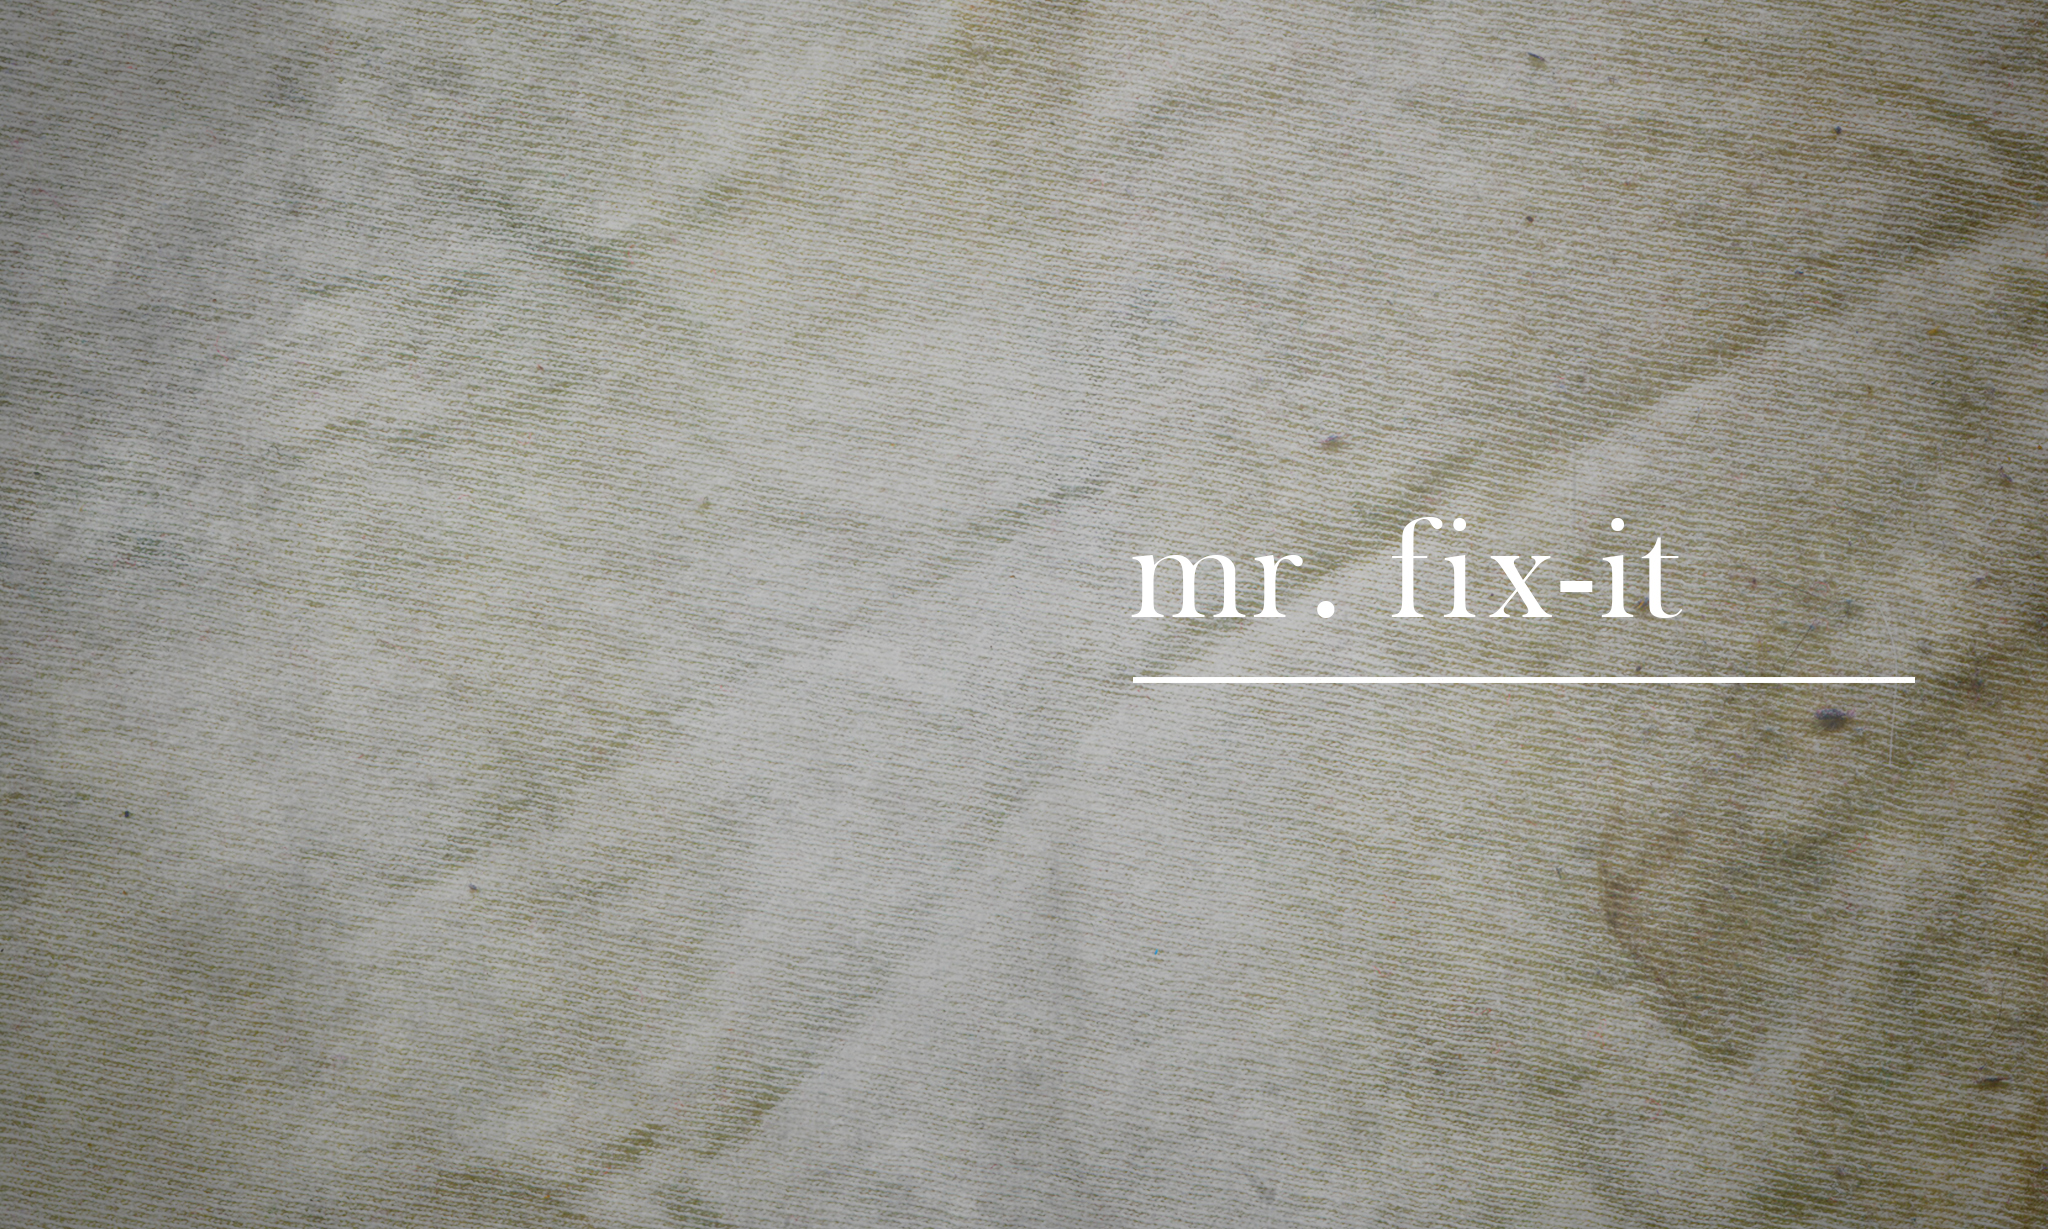 mr fix it, the heart mr fix it